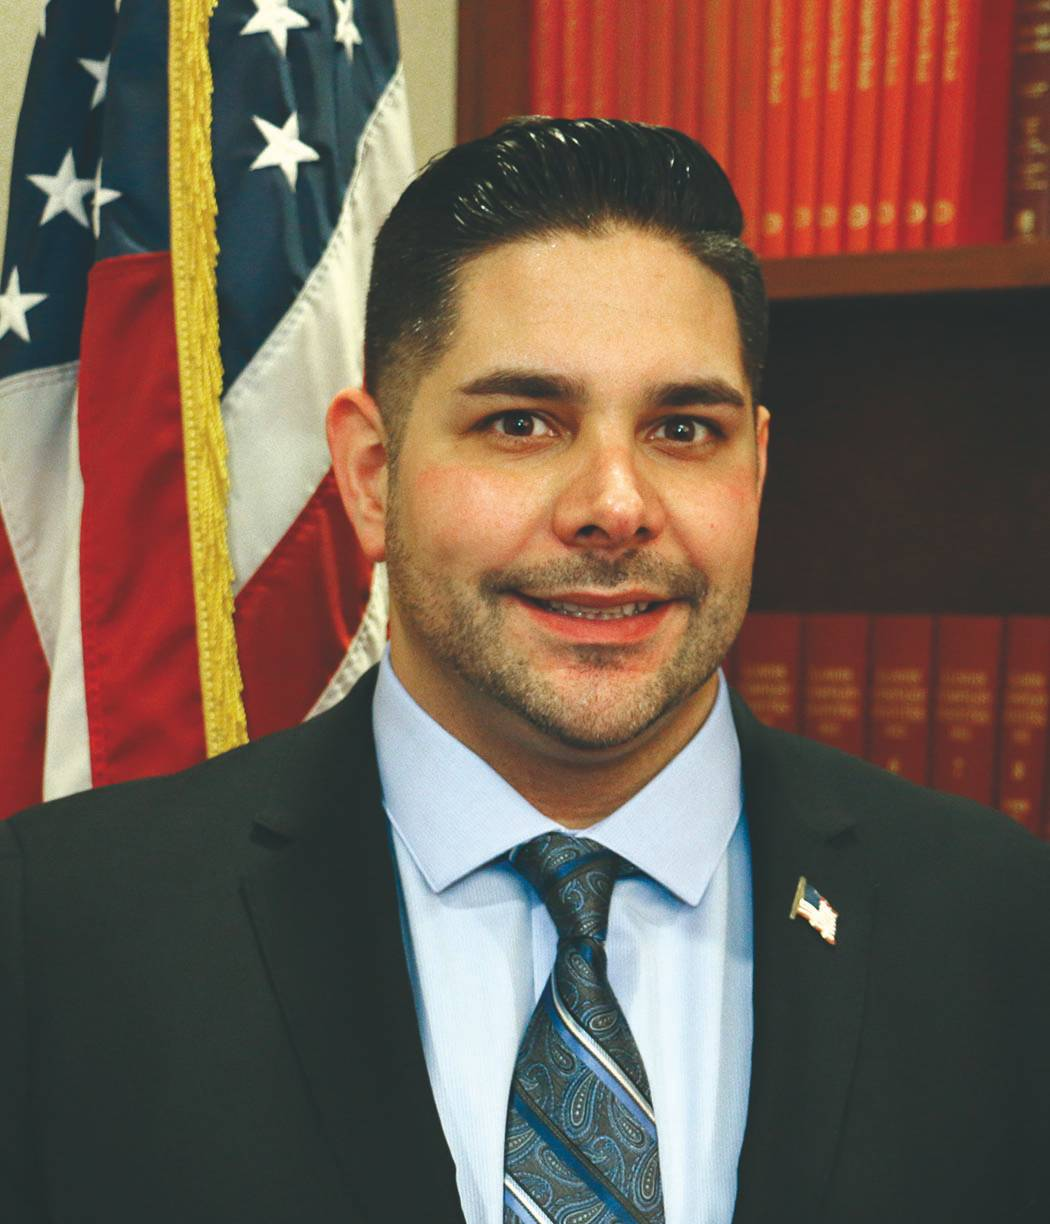 Armando Perez, running for Bensenville Village Board